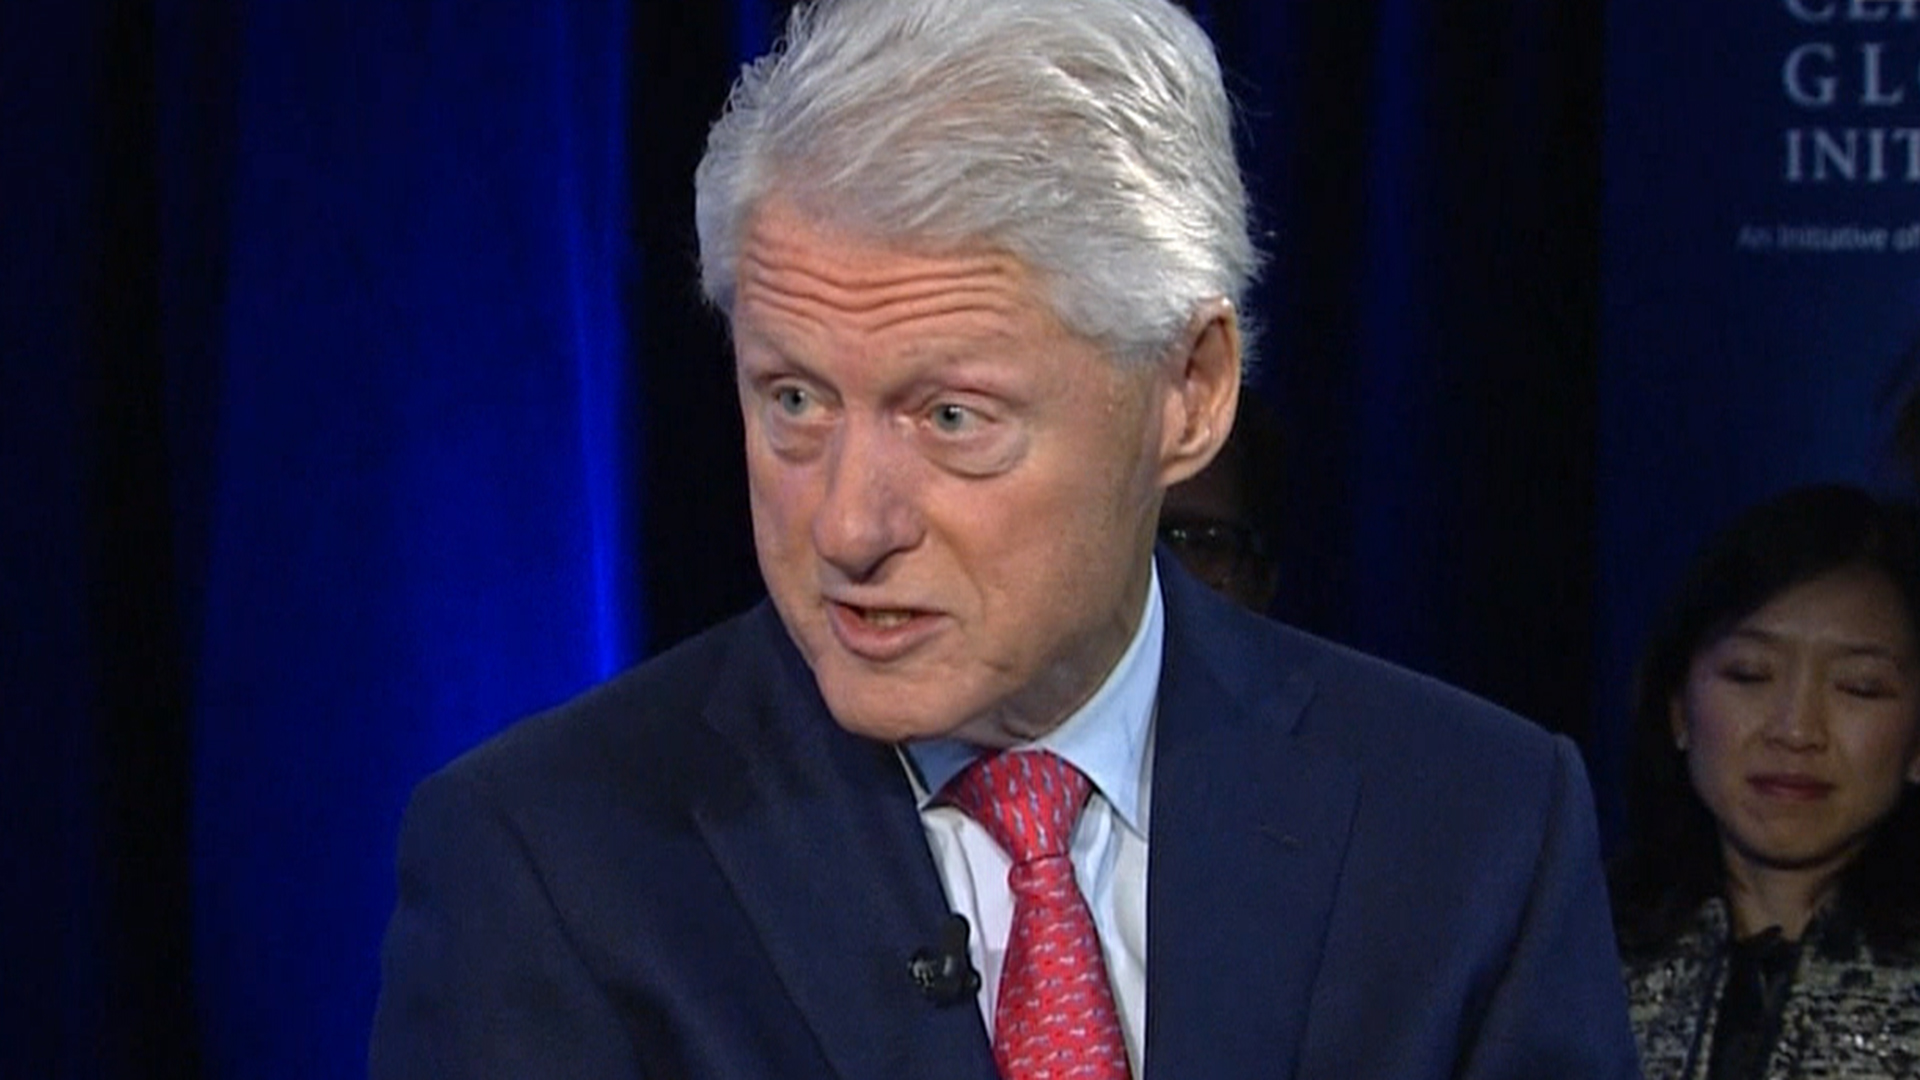 Comey S Wife Devastated When Hillary Clinton Lost: Bill Clinton Takes On GOP On Behalf Of Wife Hillary